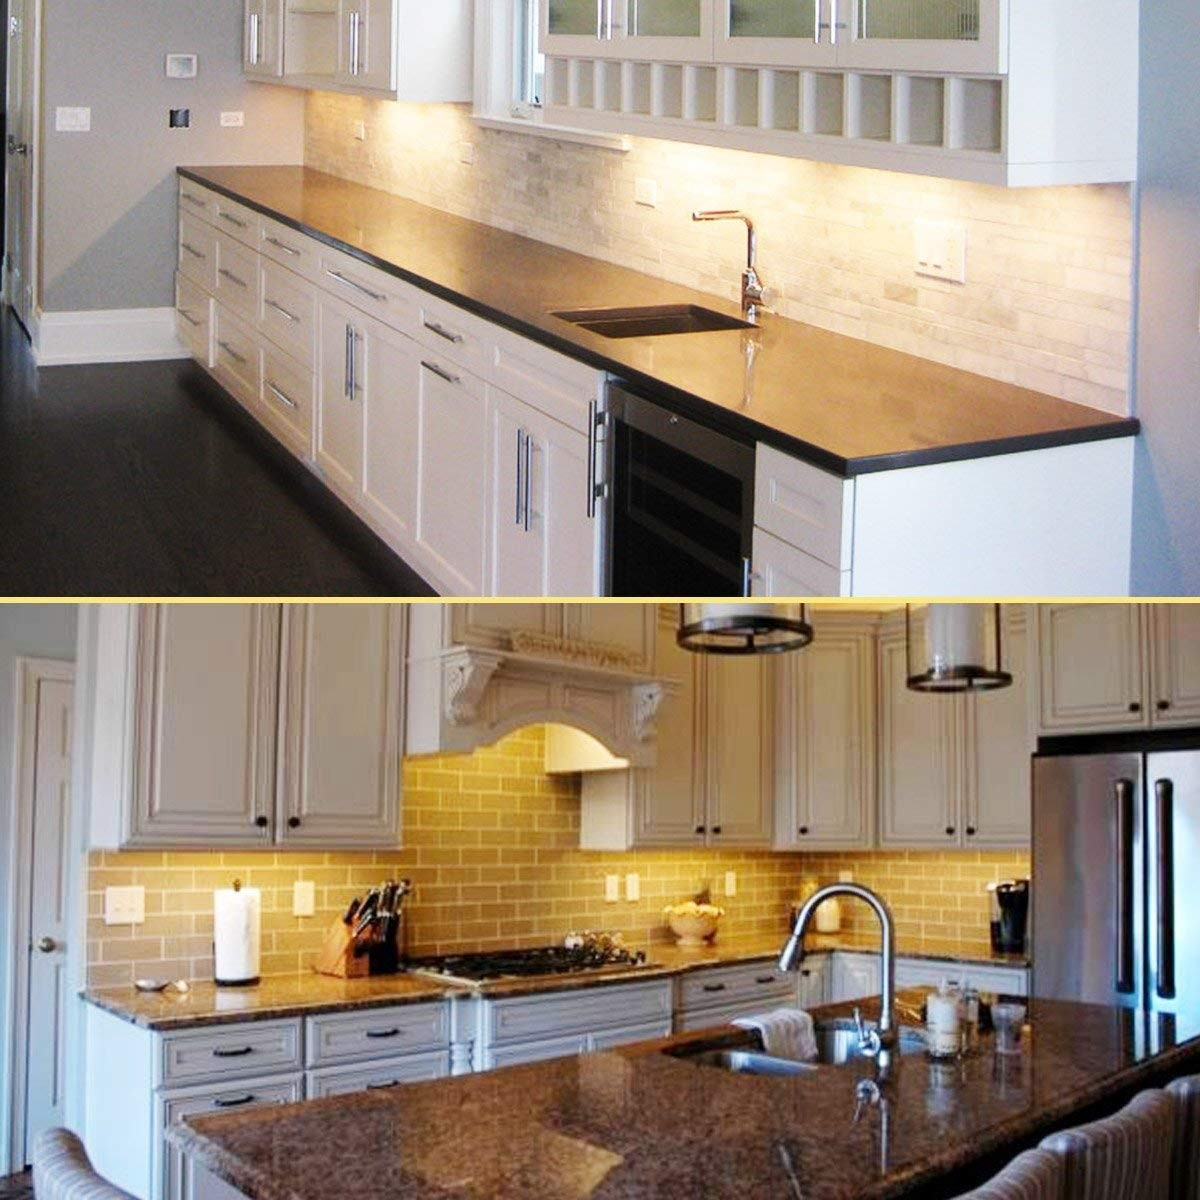 Led Lights In Kitchen Cabinets: Ultra Thin LED Under Cabinet/Counter Kitchen Lighting Kit